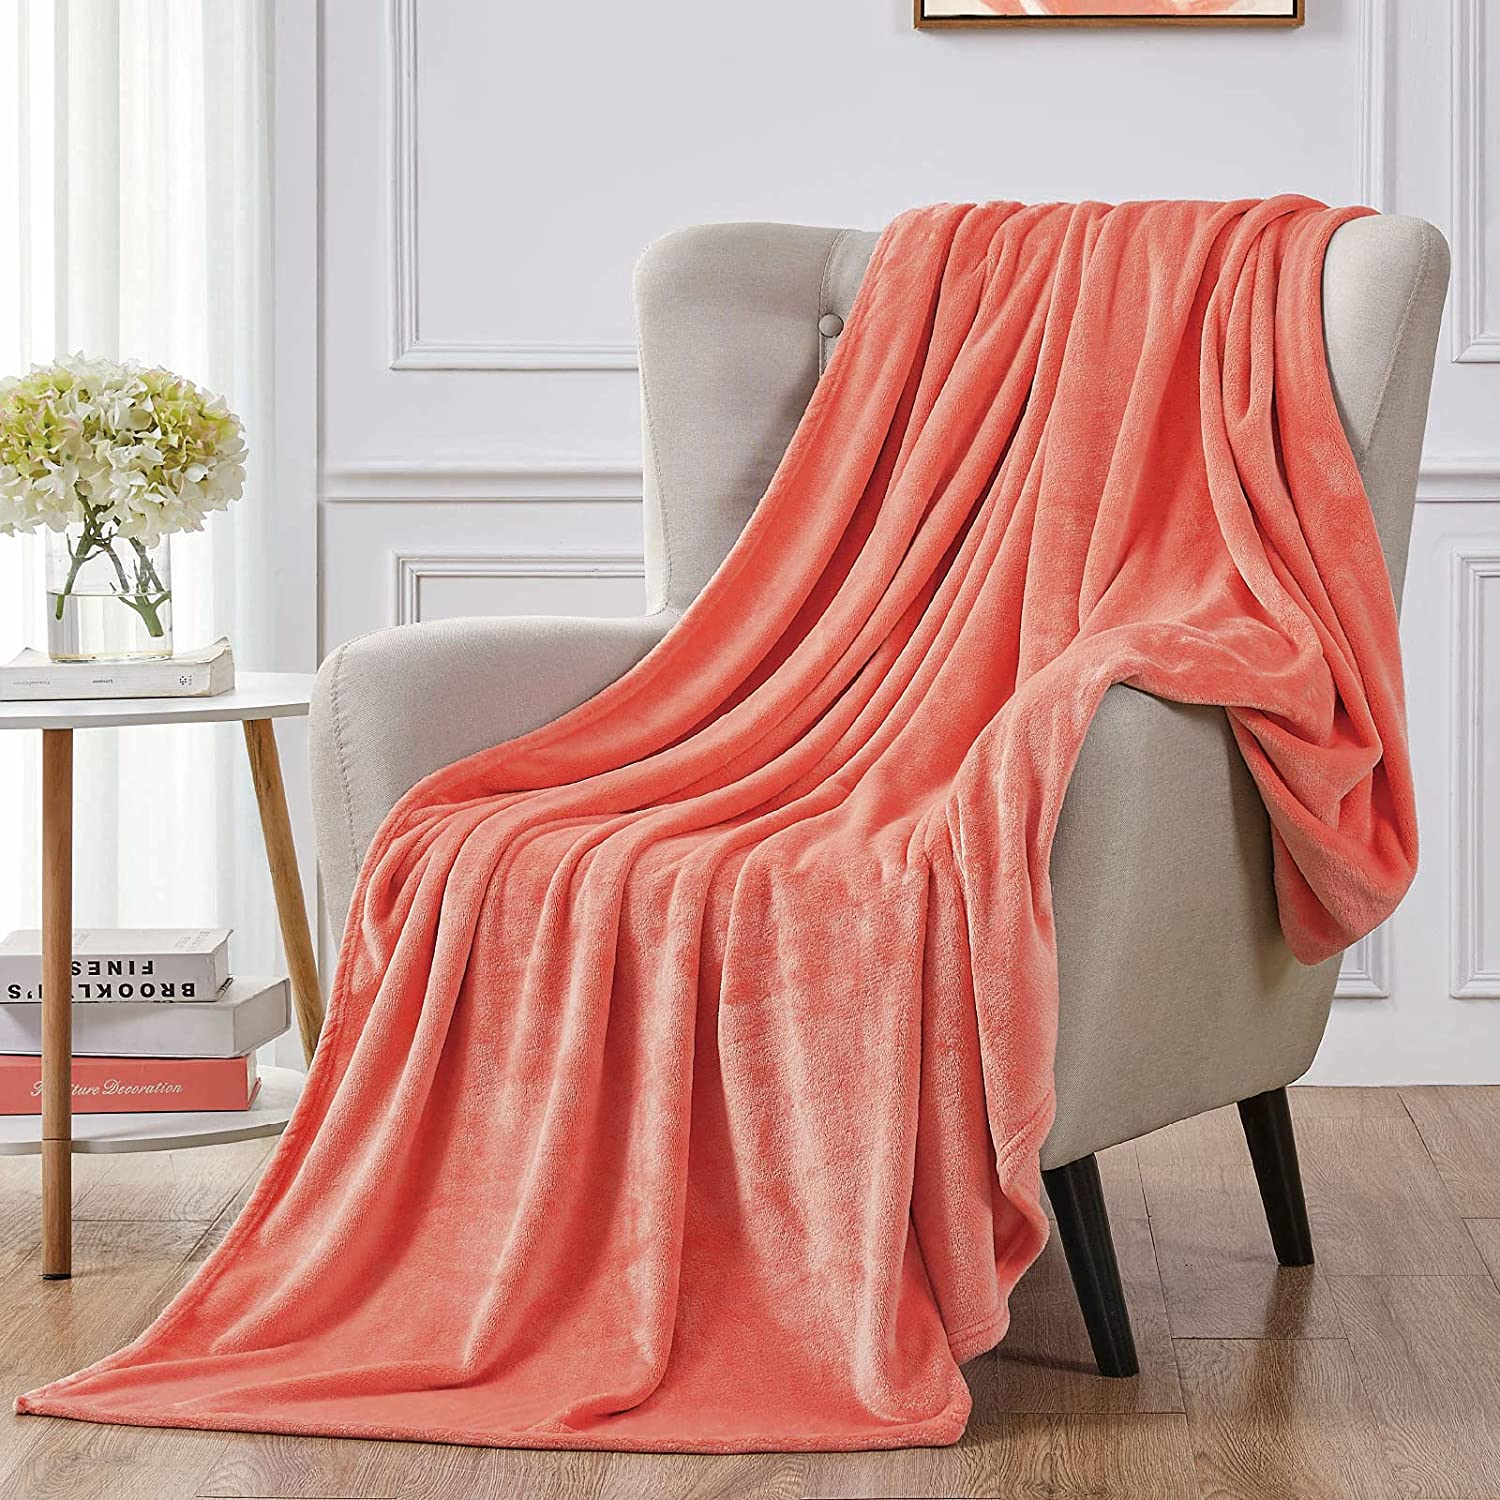 """Walensee Fleece Blanket Plush Throw Fuzzy Lightweight (Throw Size 50""""x60"""" Coral) Super Soft Microfiber Flannel Blankets for Couch, Bed, Sofa Ultra Luxurious Warm and Cozy for All Seasons"""